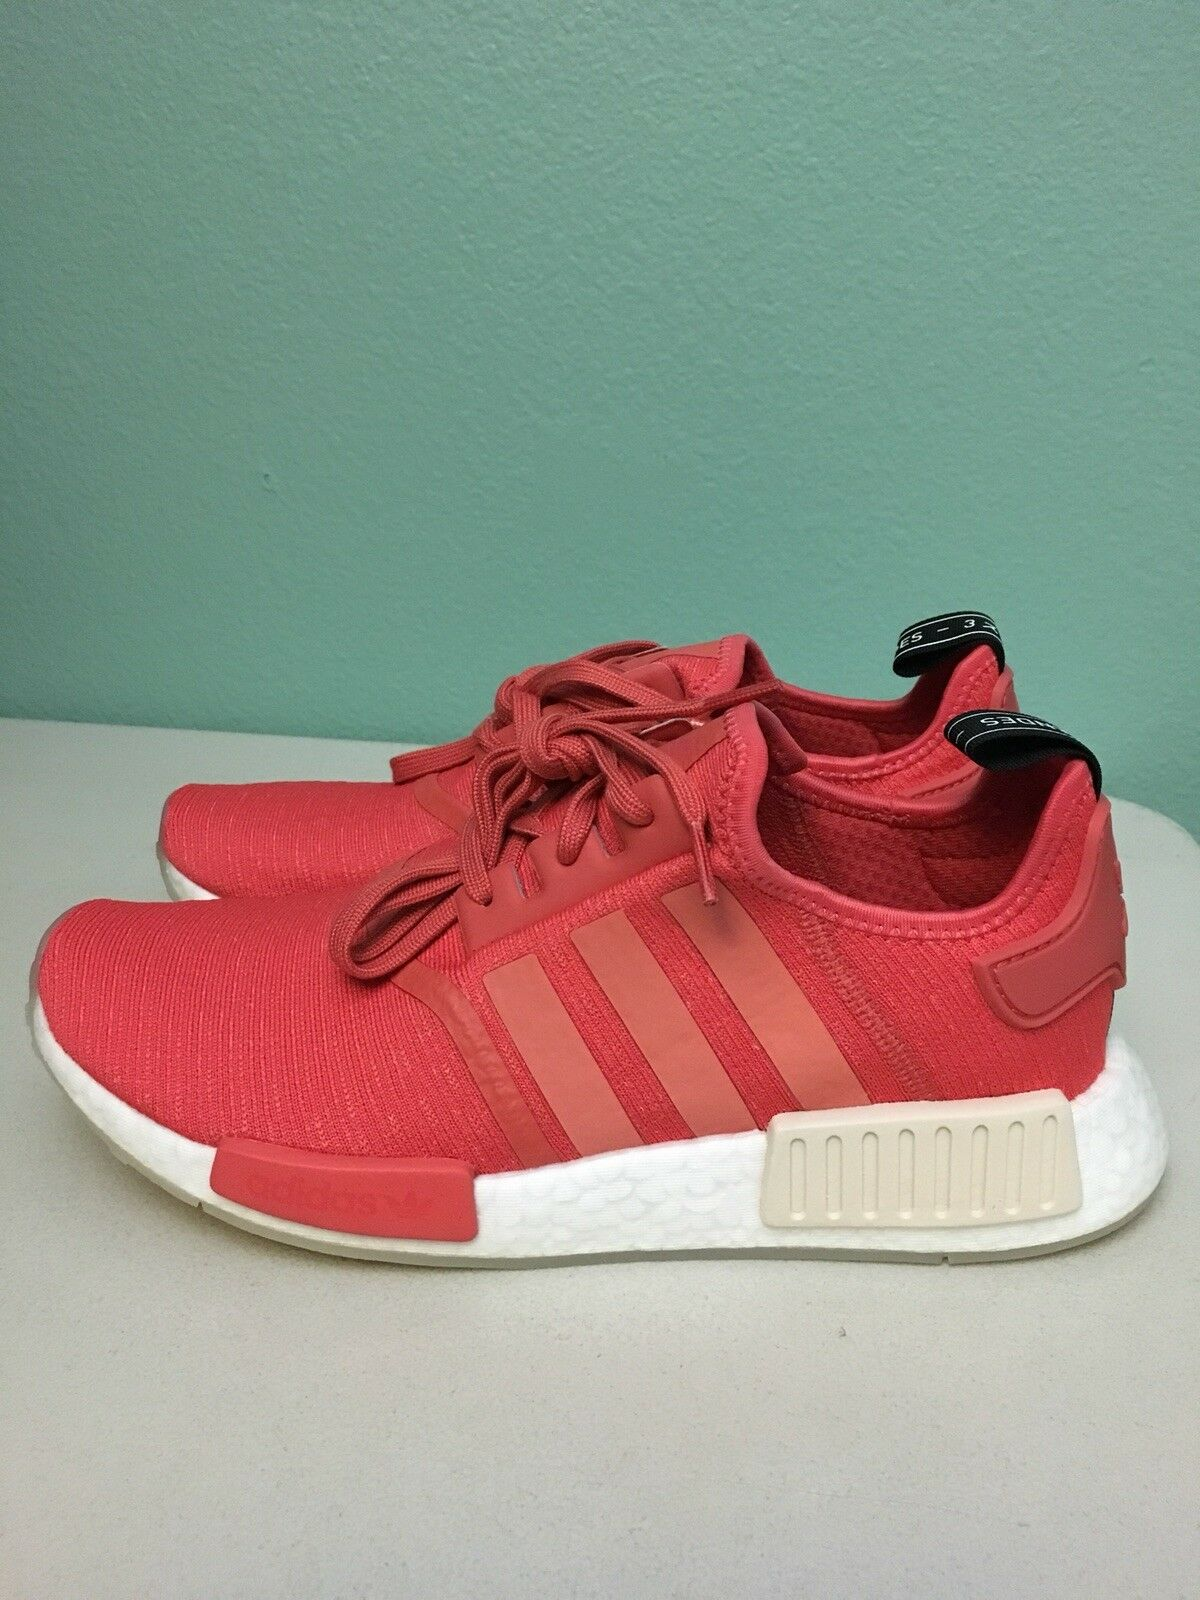 Women's Adidas NMD R1 CQ2014 Size 10